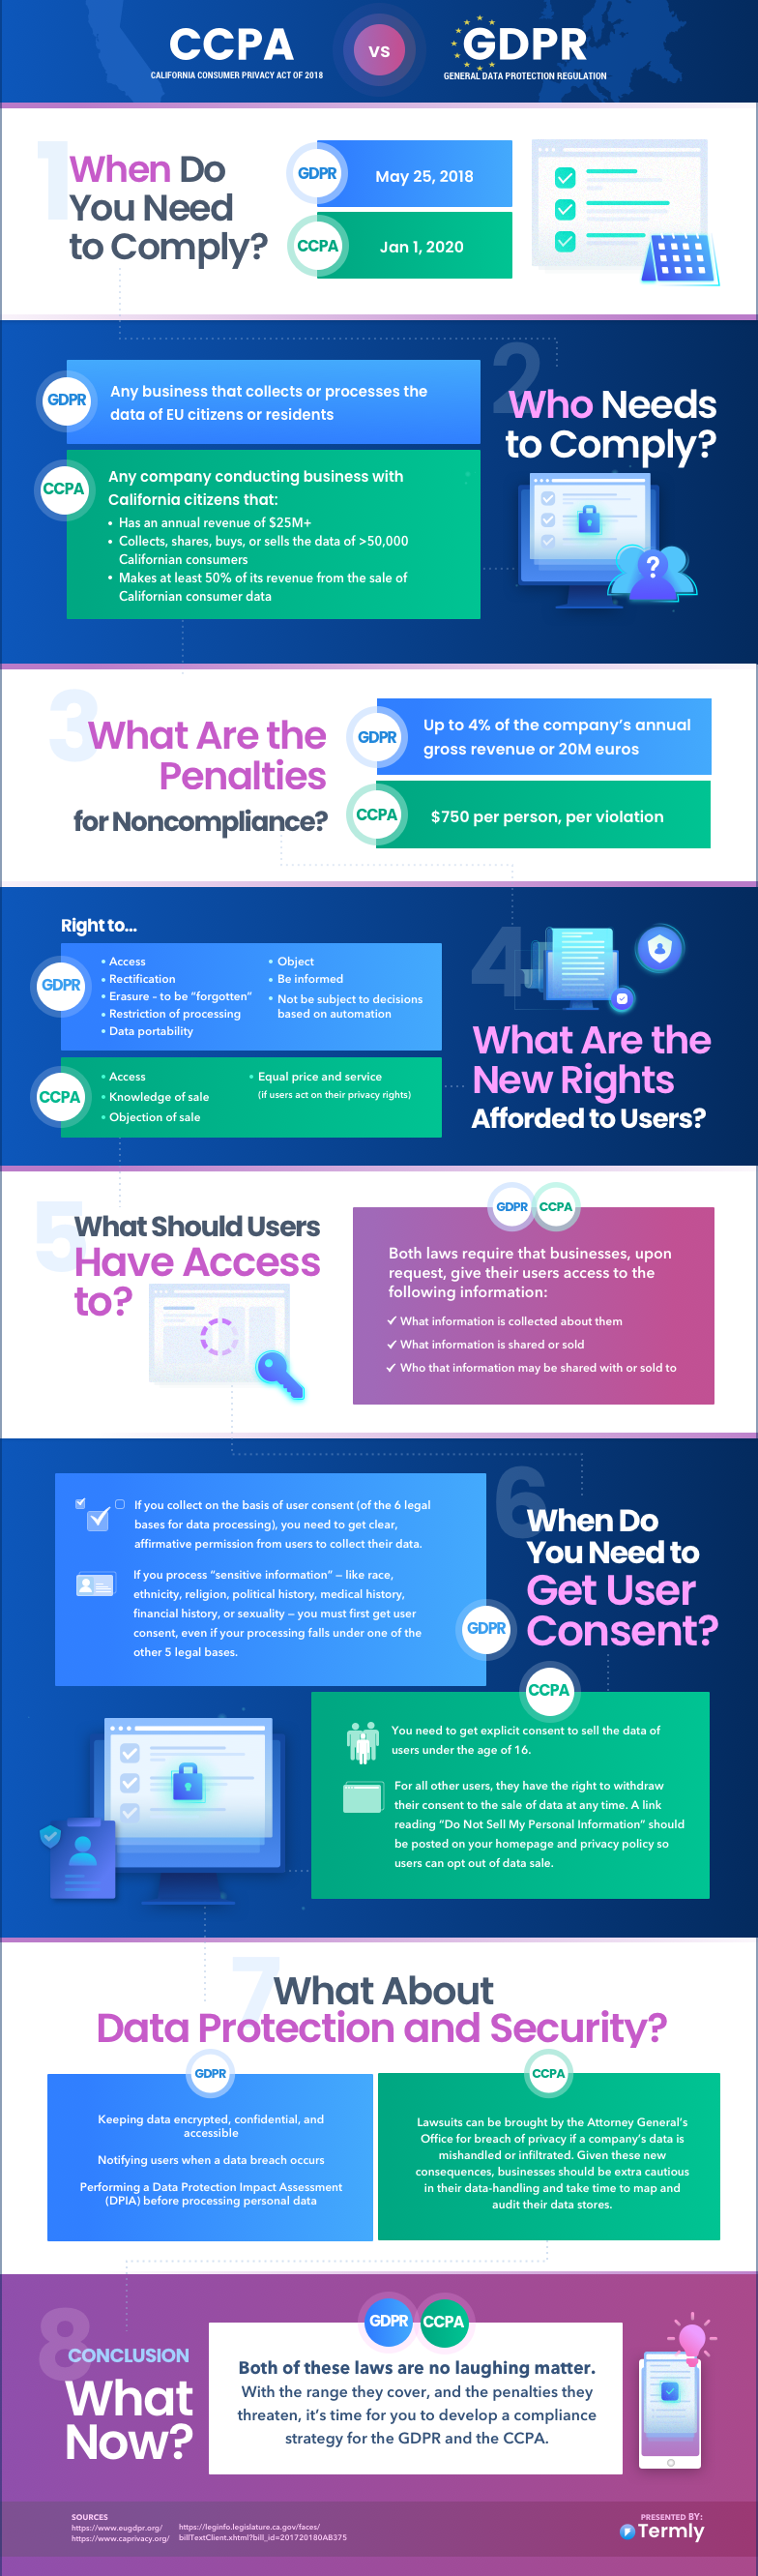 CCPA-vs-GDPR-Infographic.png